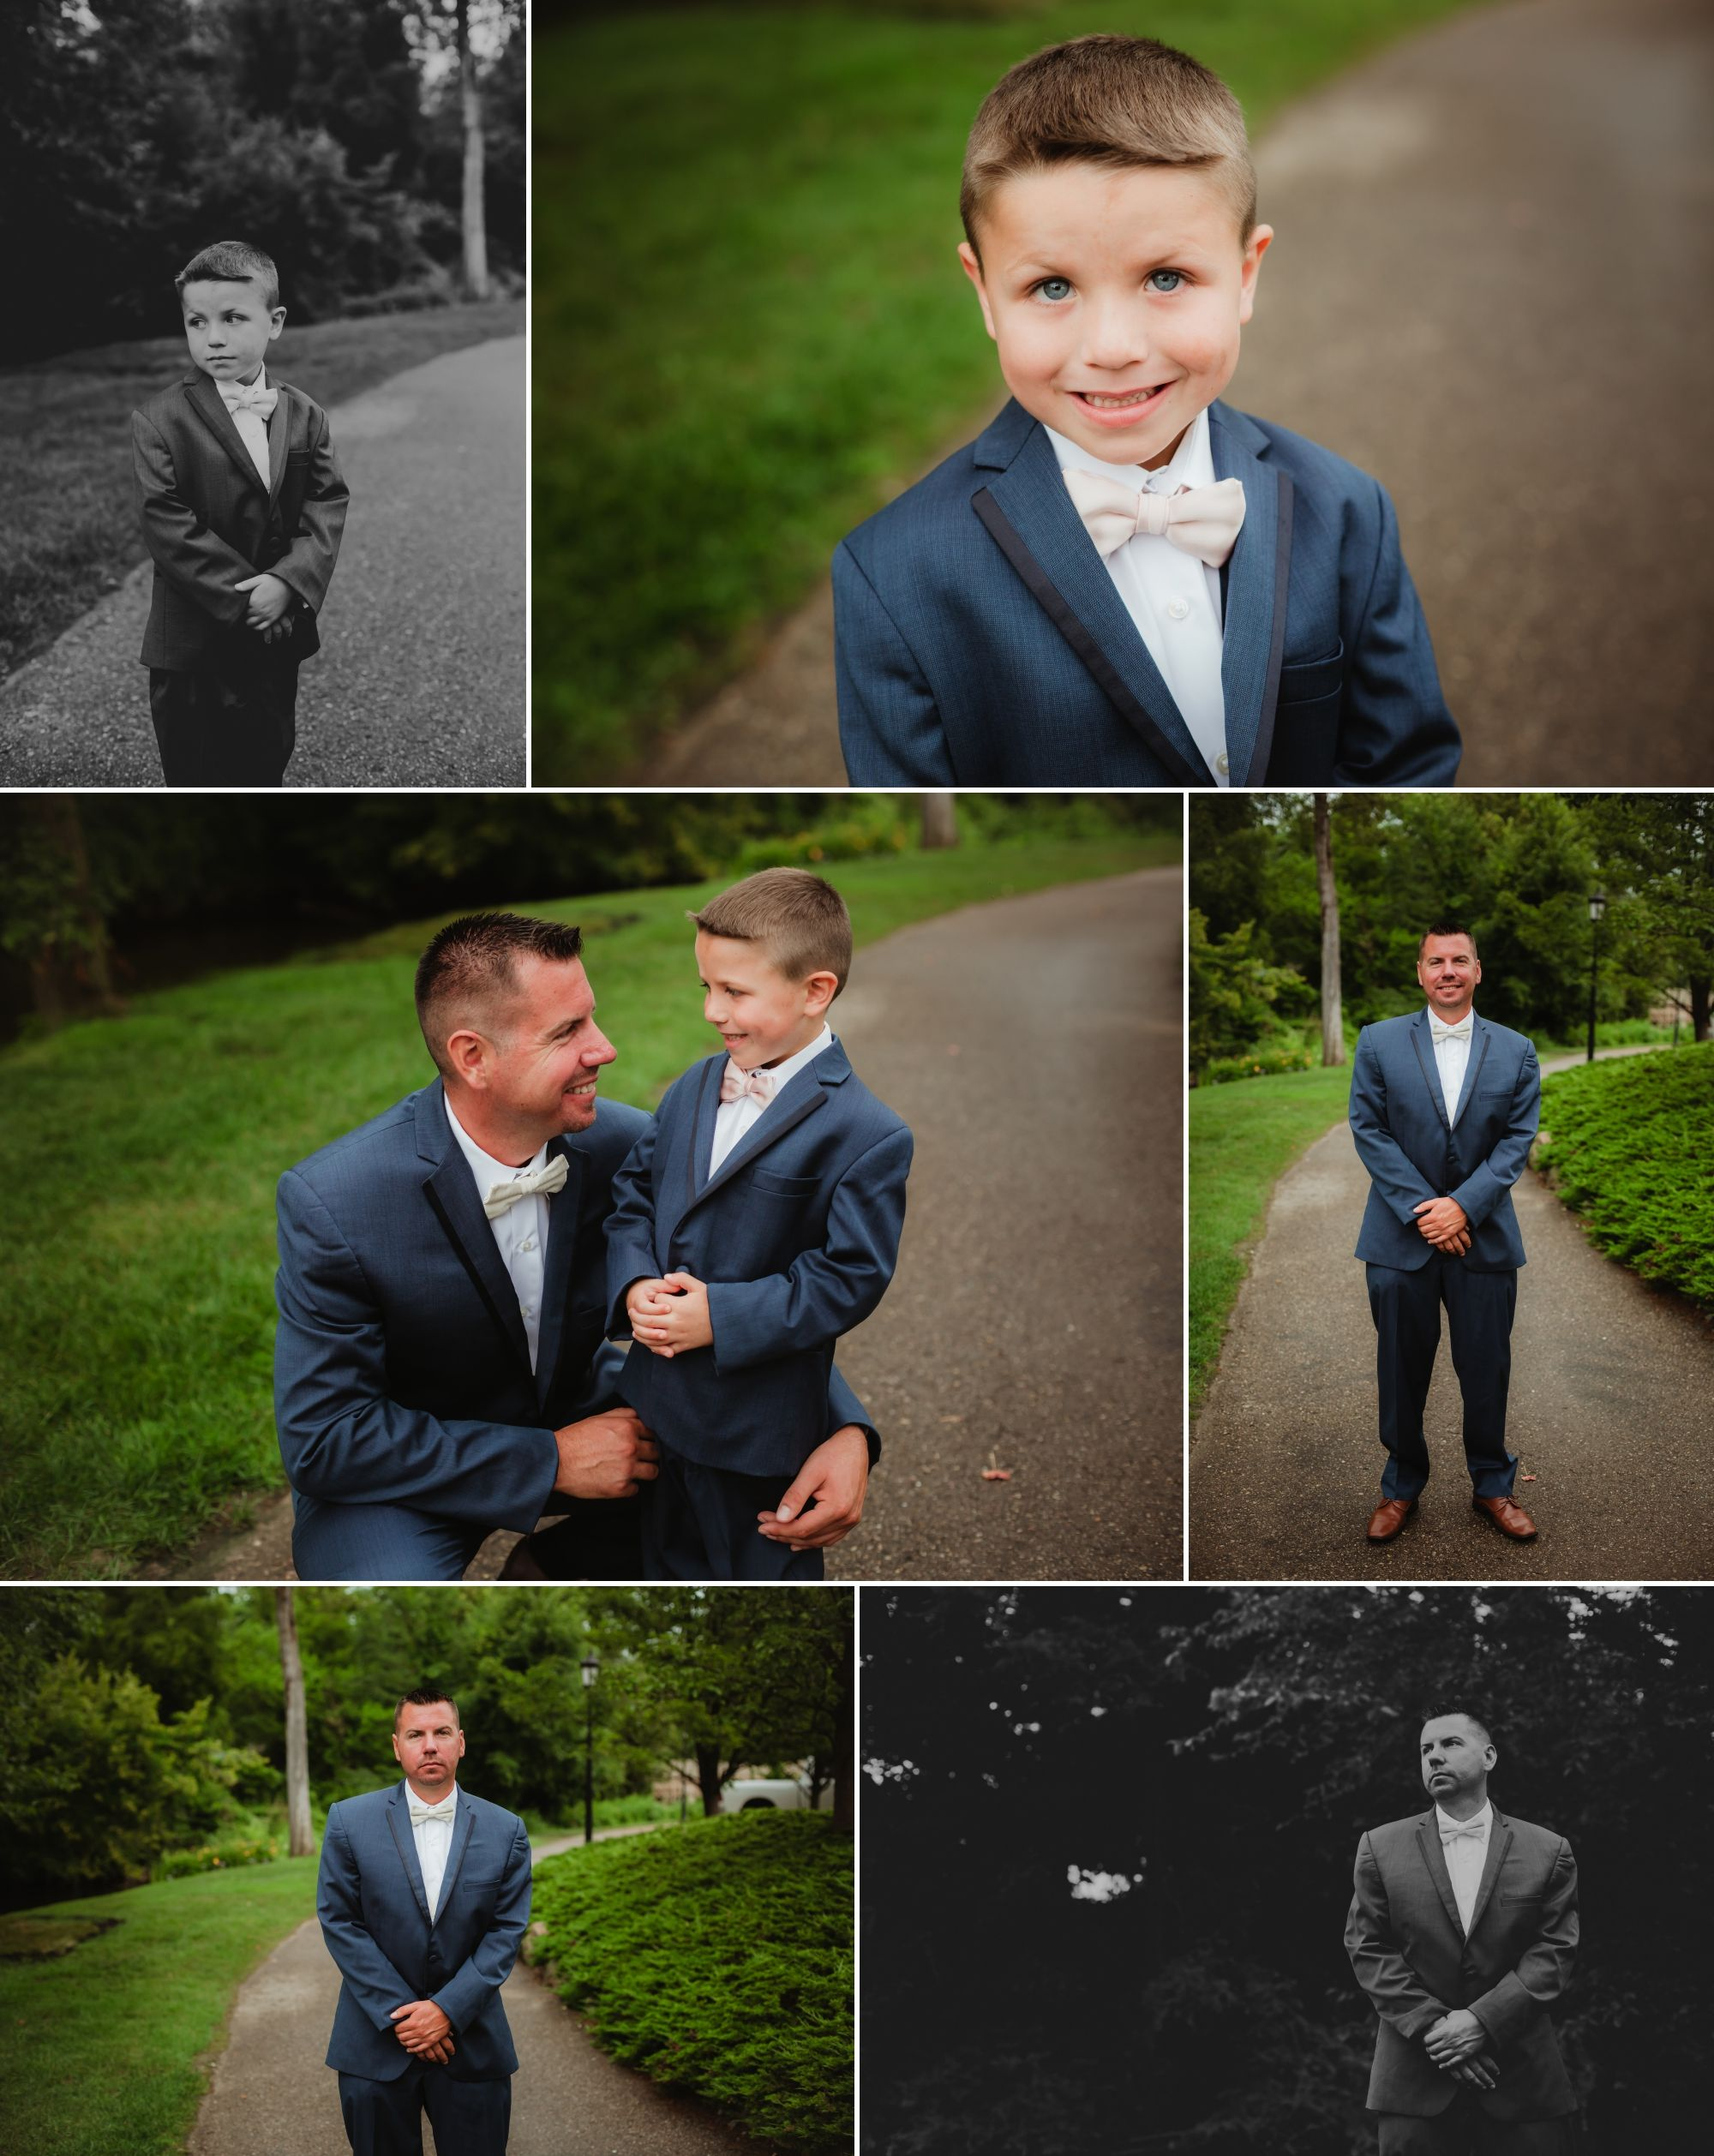 Photos of the groom and ring bearer standing on a path outside.